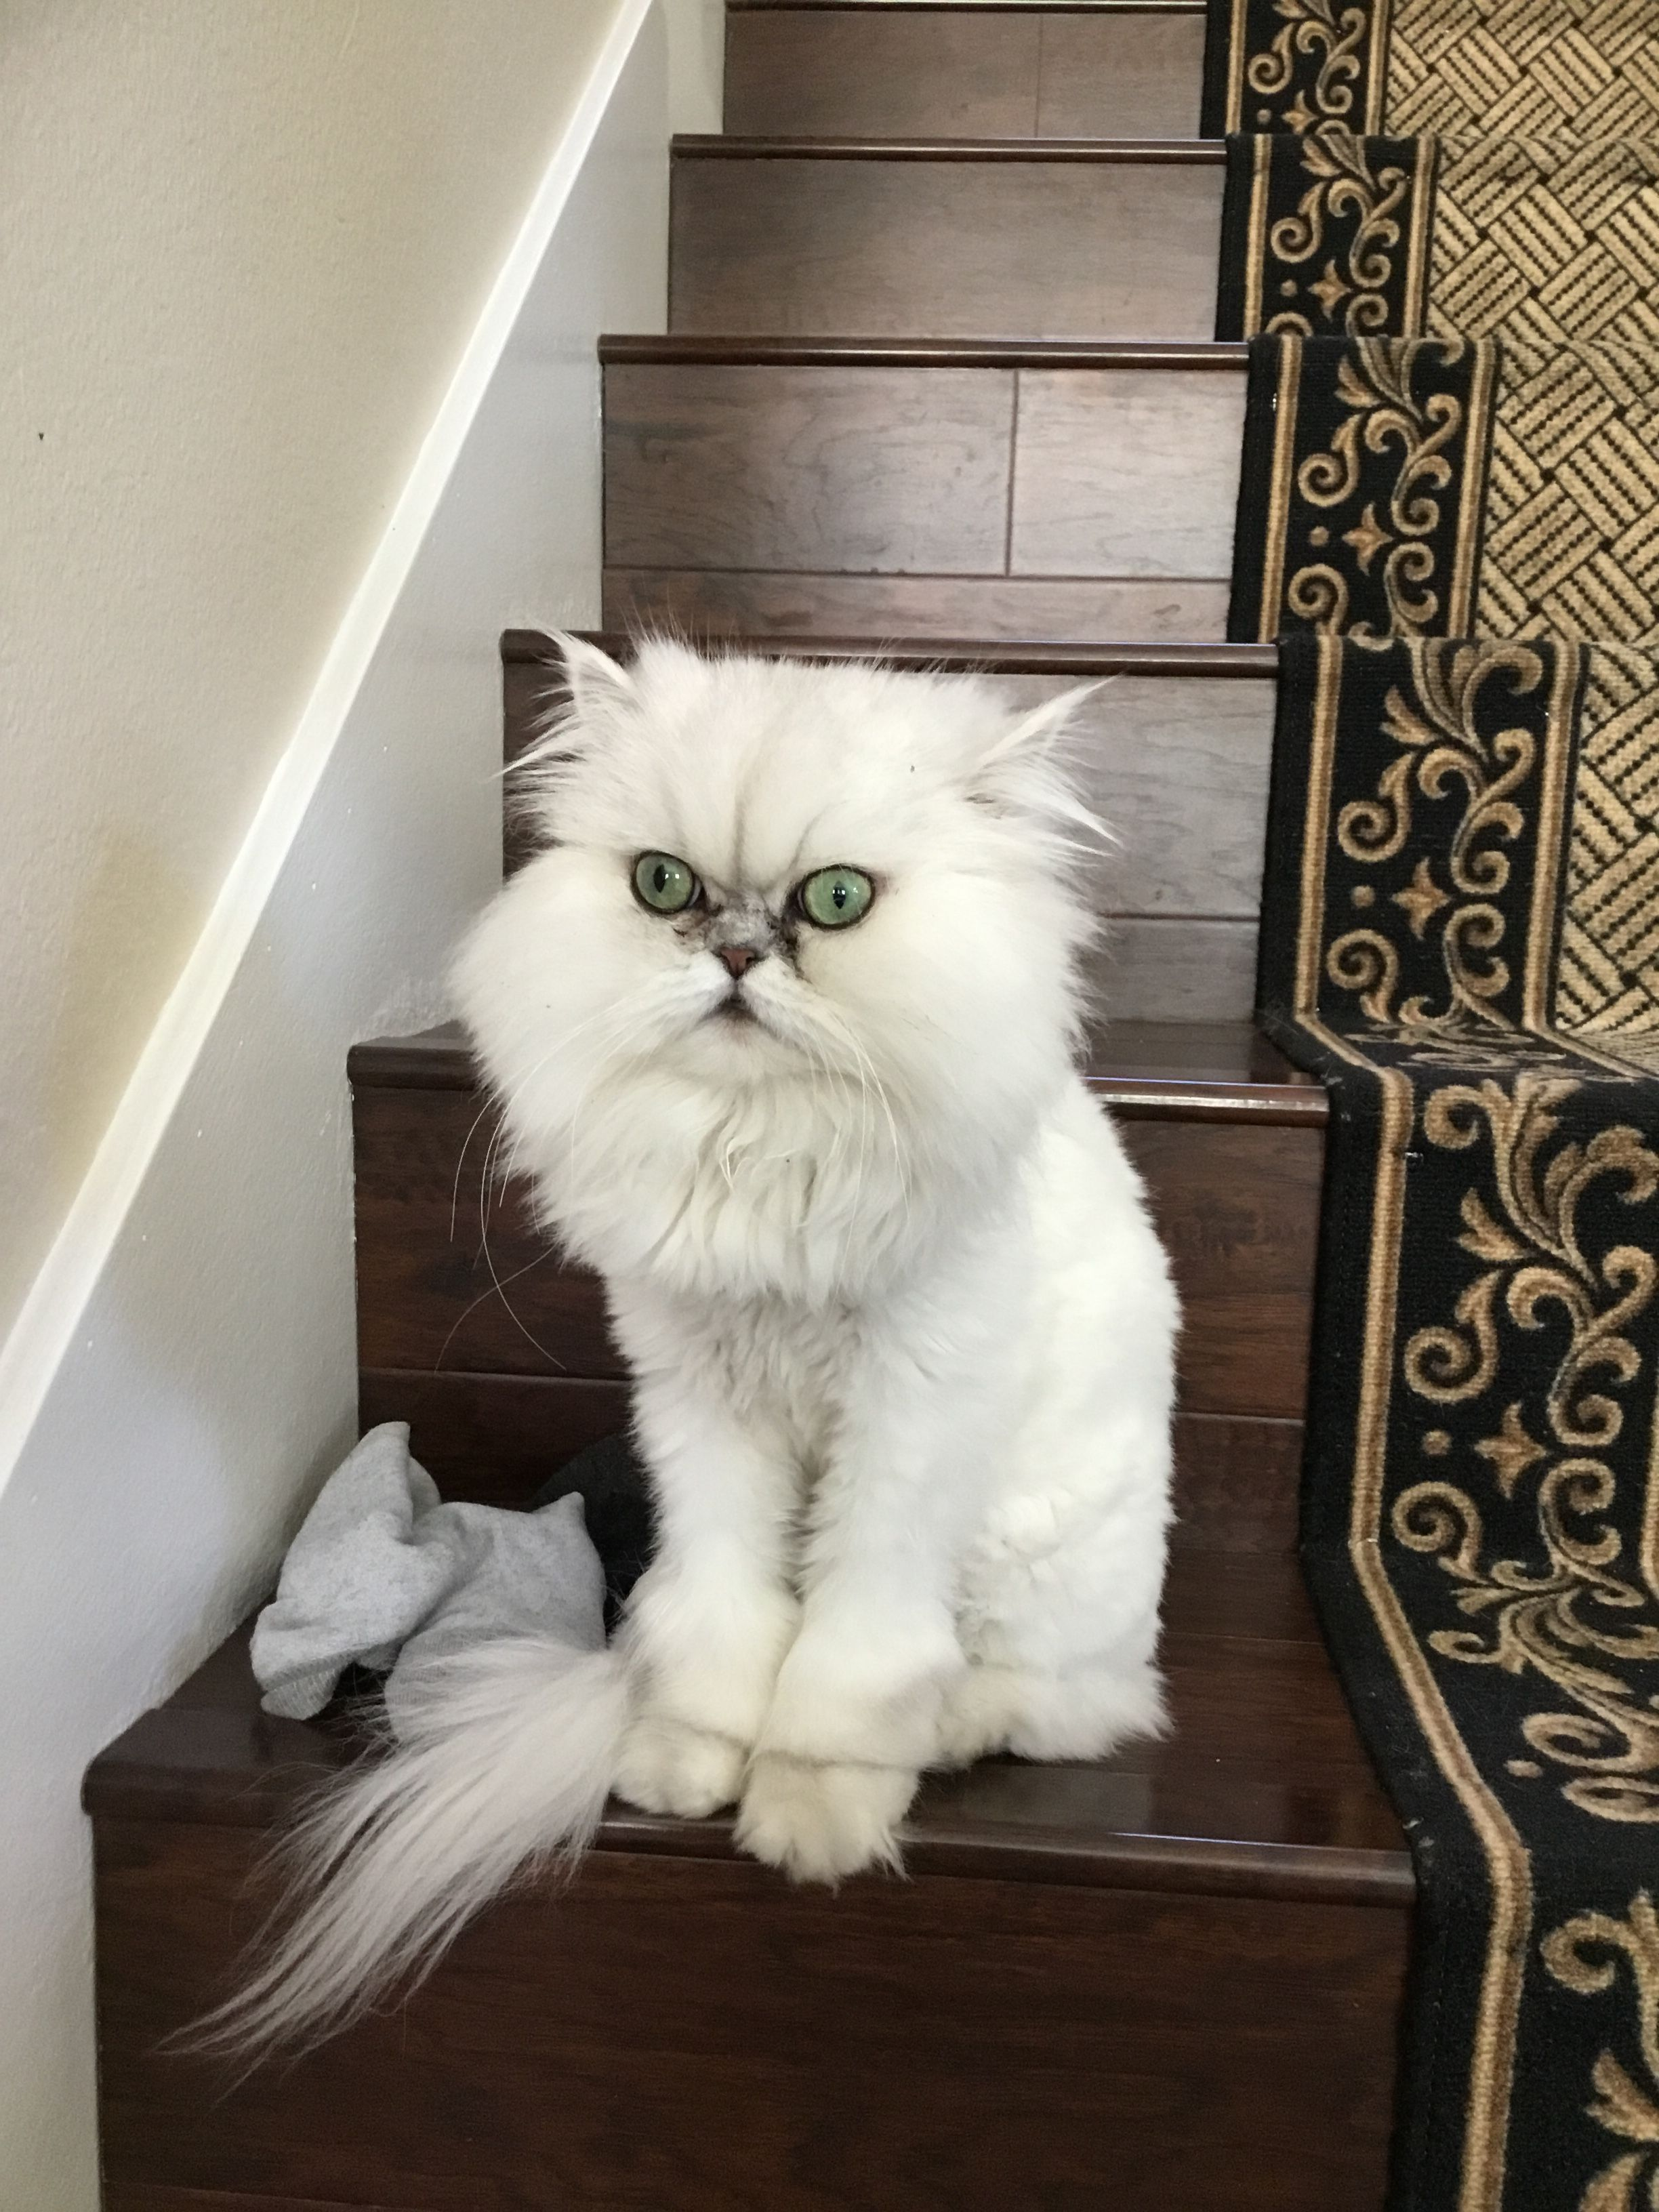 Elleni S Beautiful Persian Cat Aristotle Showing Off His New Lion Haircut Love Those Eyes Cat Images Hd Persian Cat Cat Lion Haircut